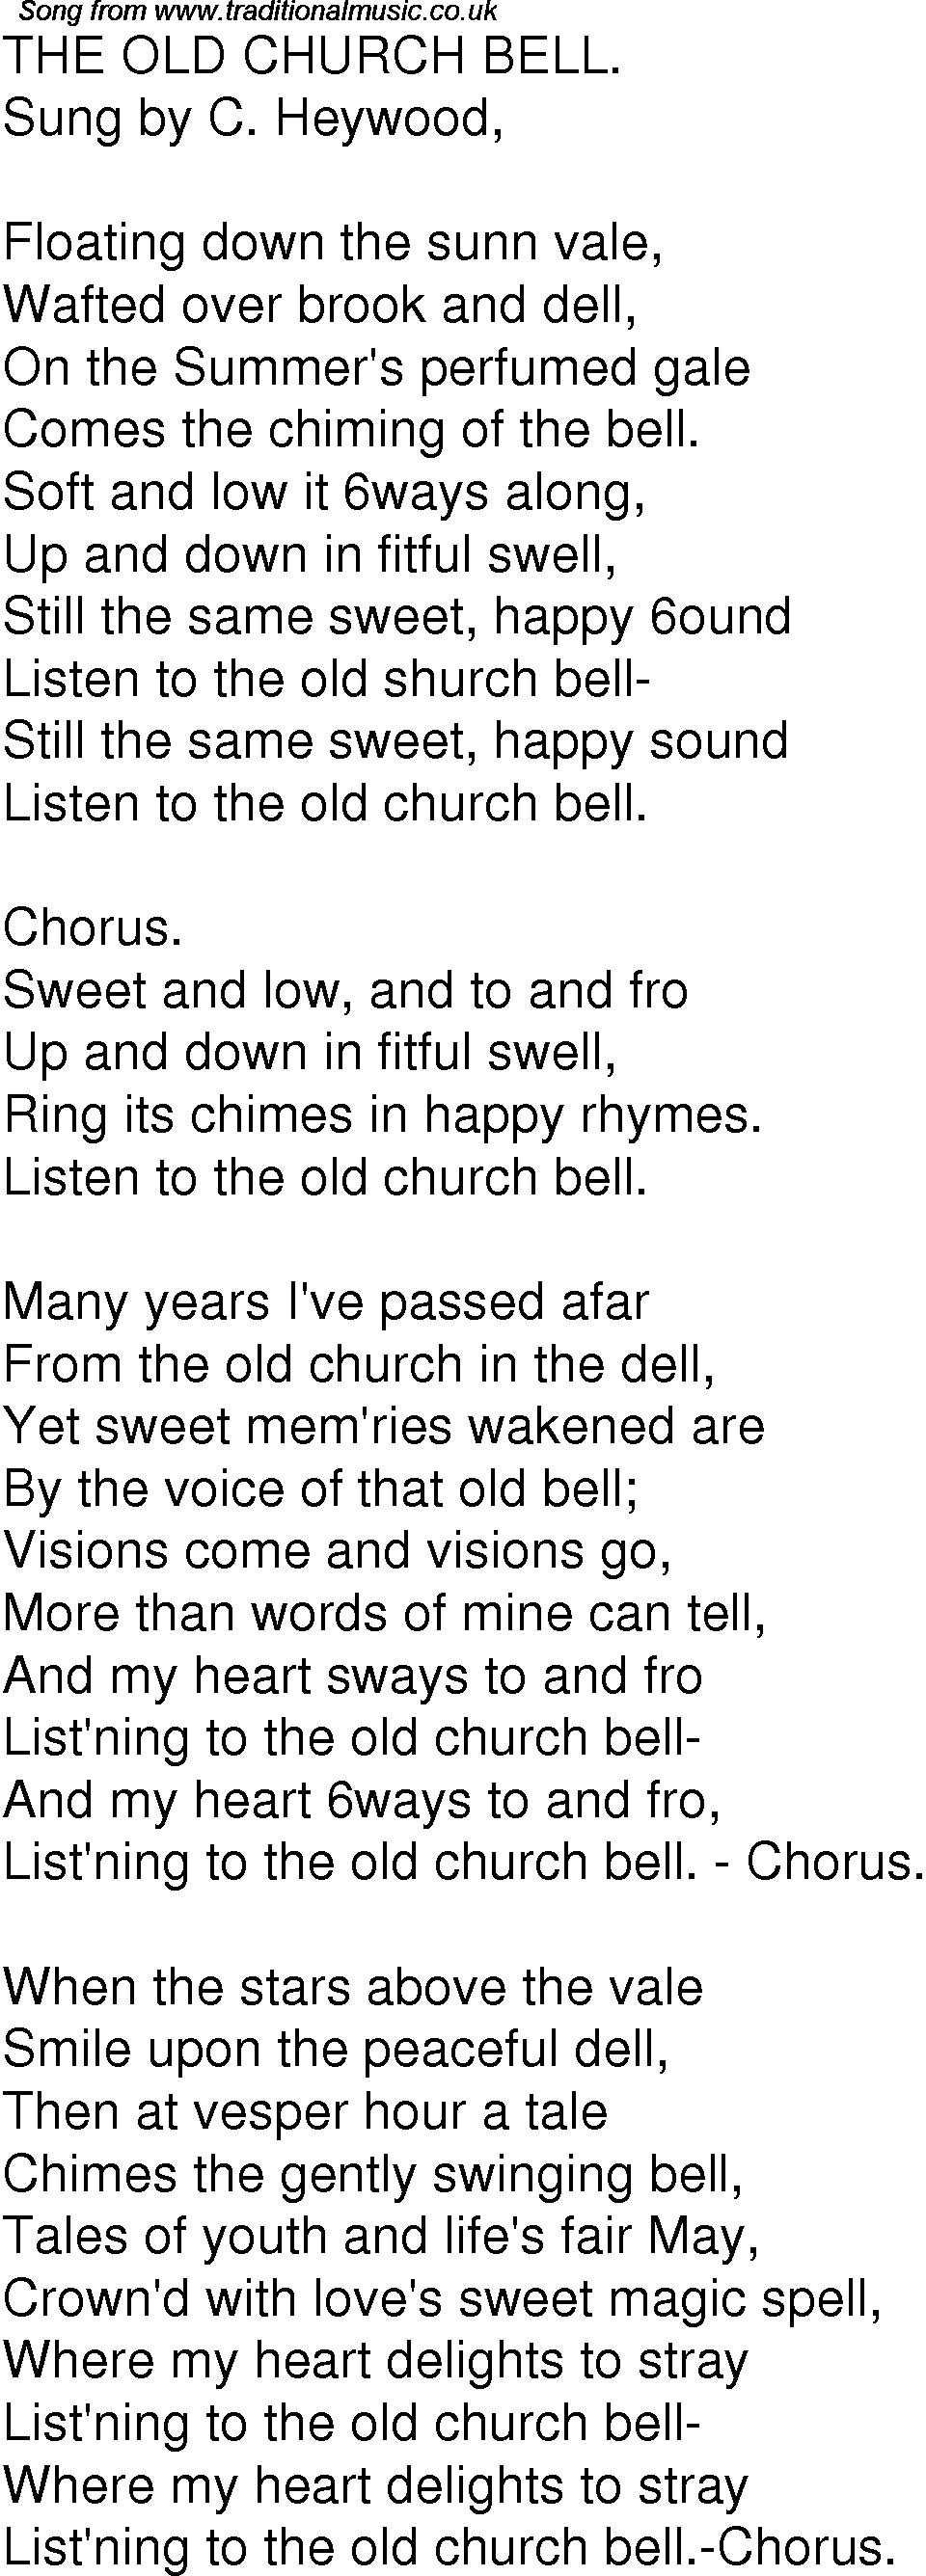 Old Time Song Lyrics for 06 The Old Church Bell